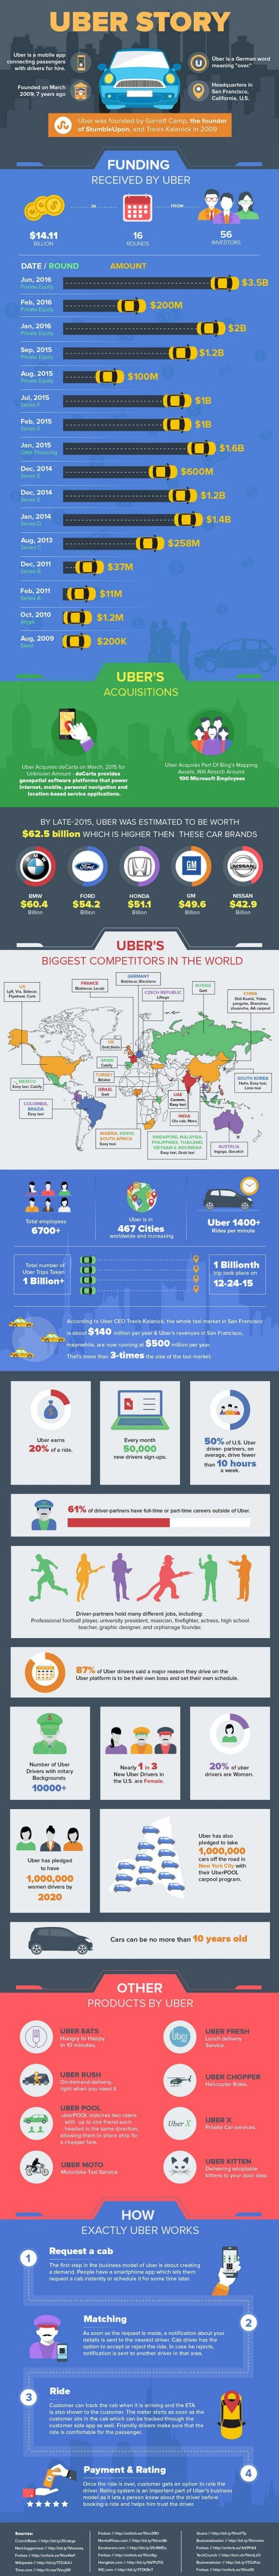 infograpic uber story